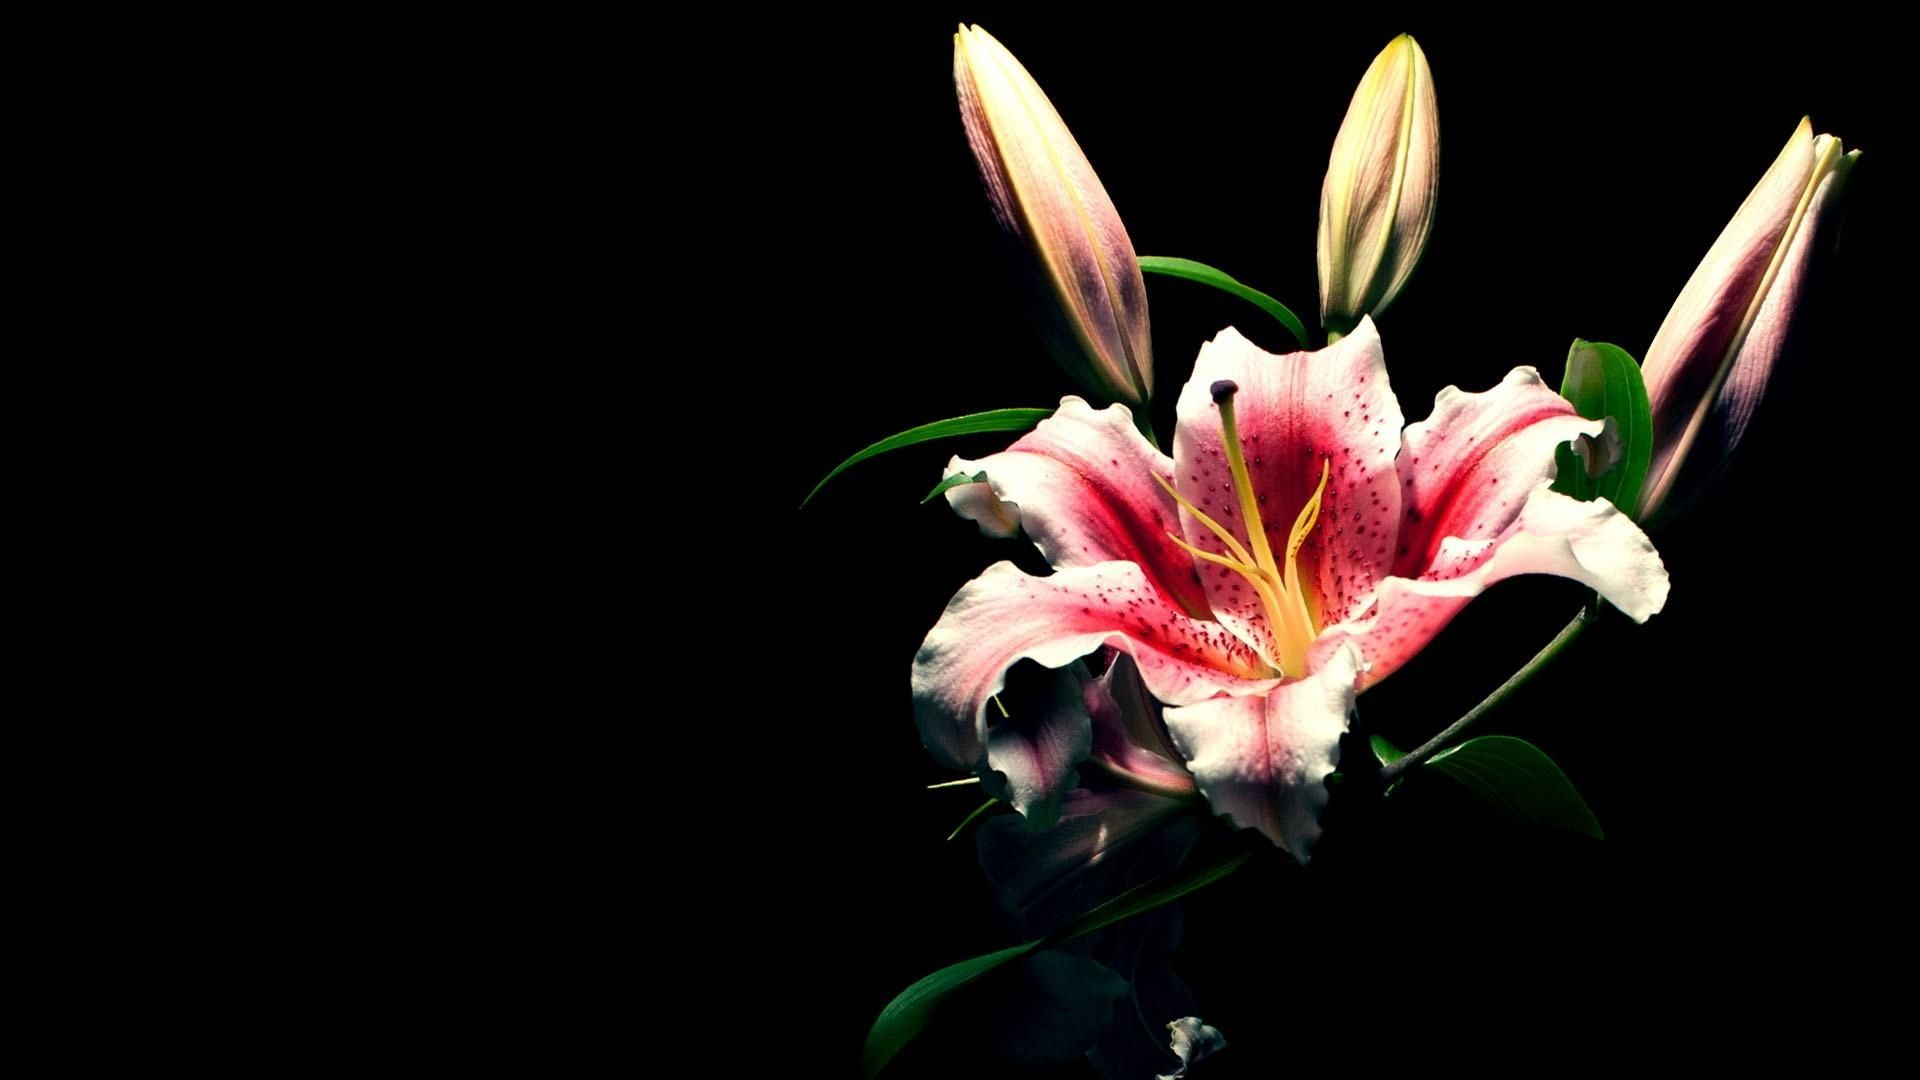 Full HD 1080p Lily Wallpapers HD, Desktop Backgrounds